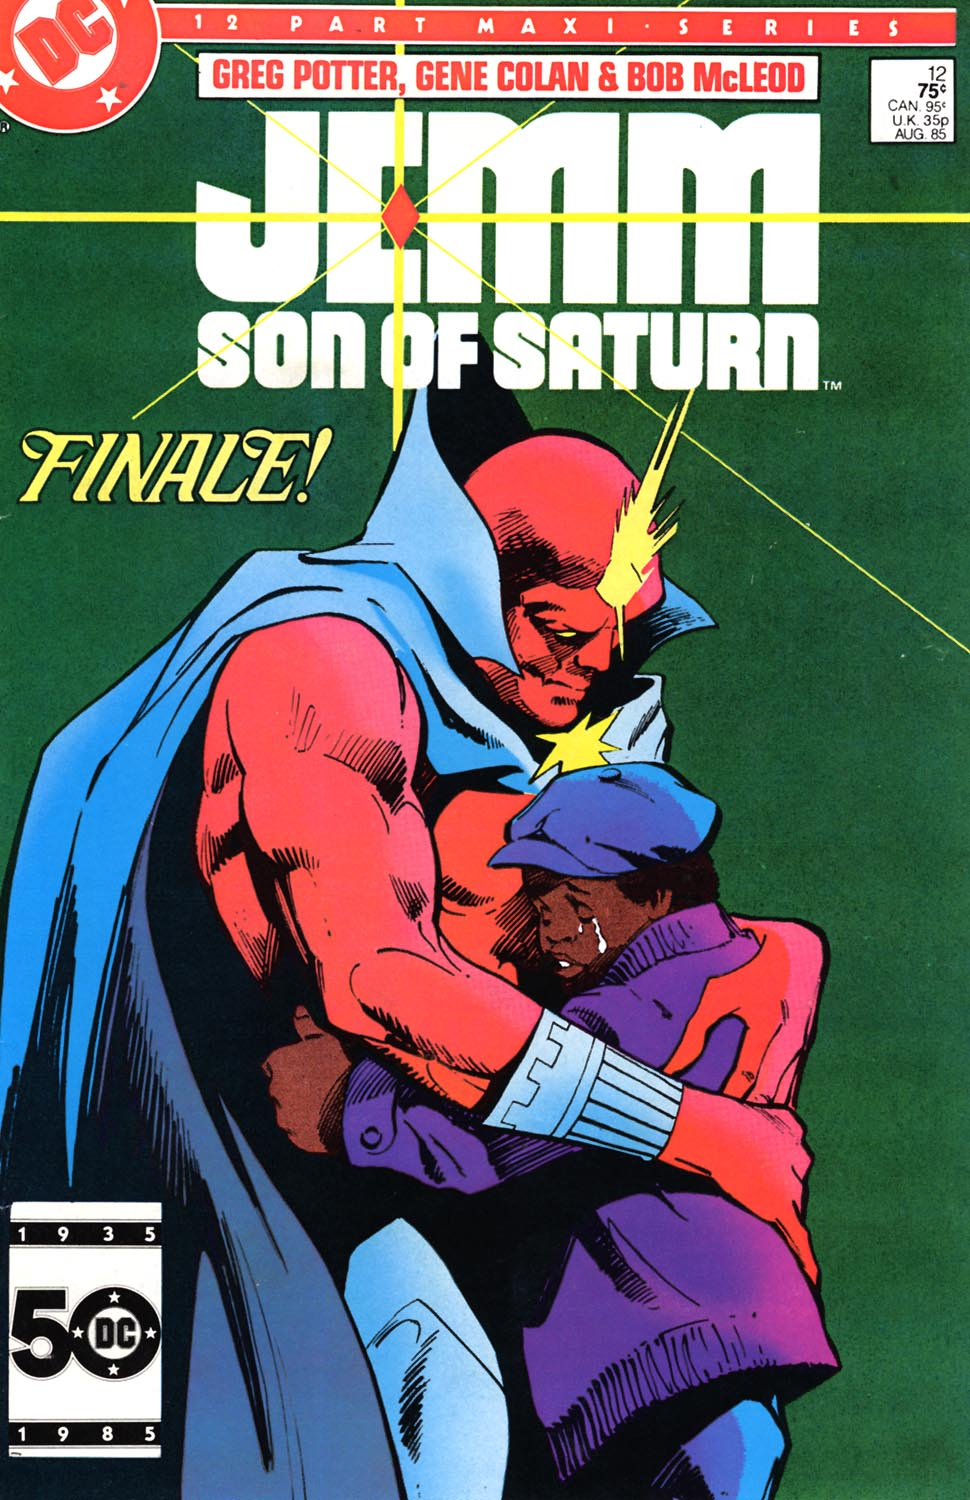 Jemm, Son of Saturn (1984) #12, cover penciled by Gene Colan & inked by Bob McLeod.